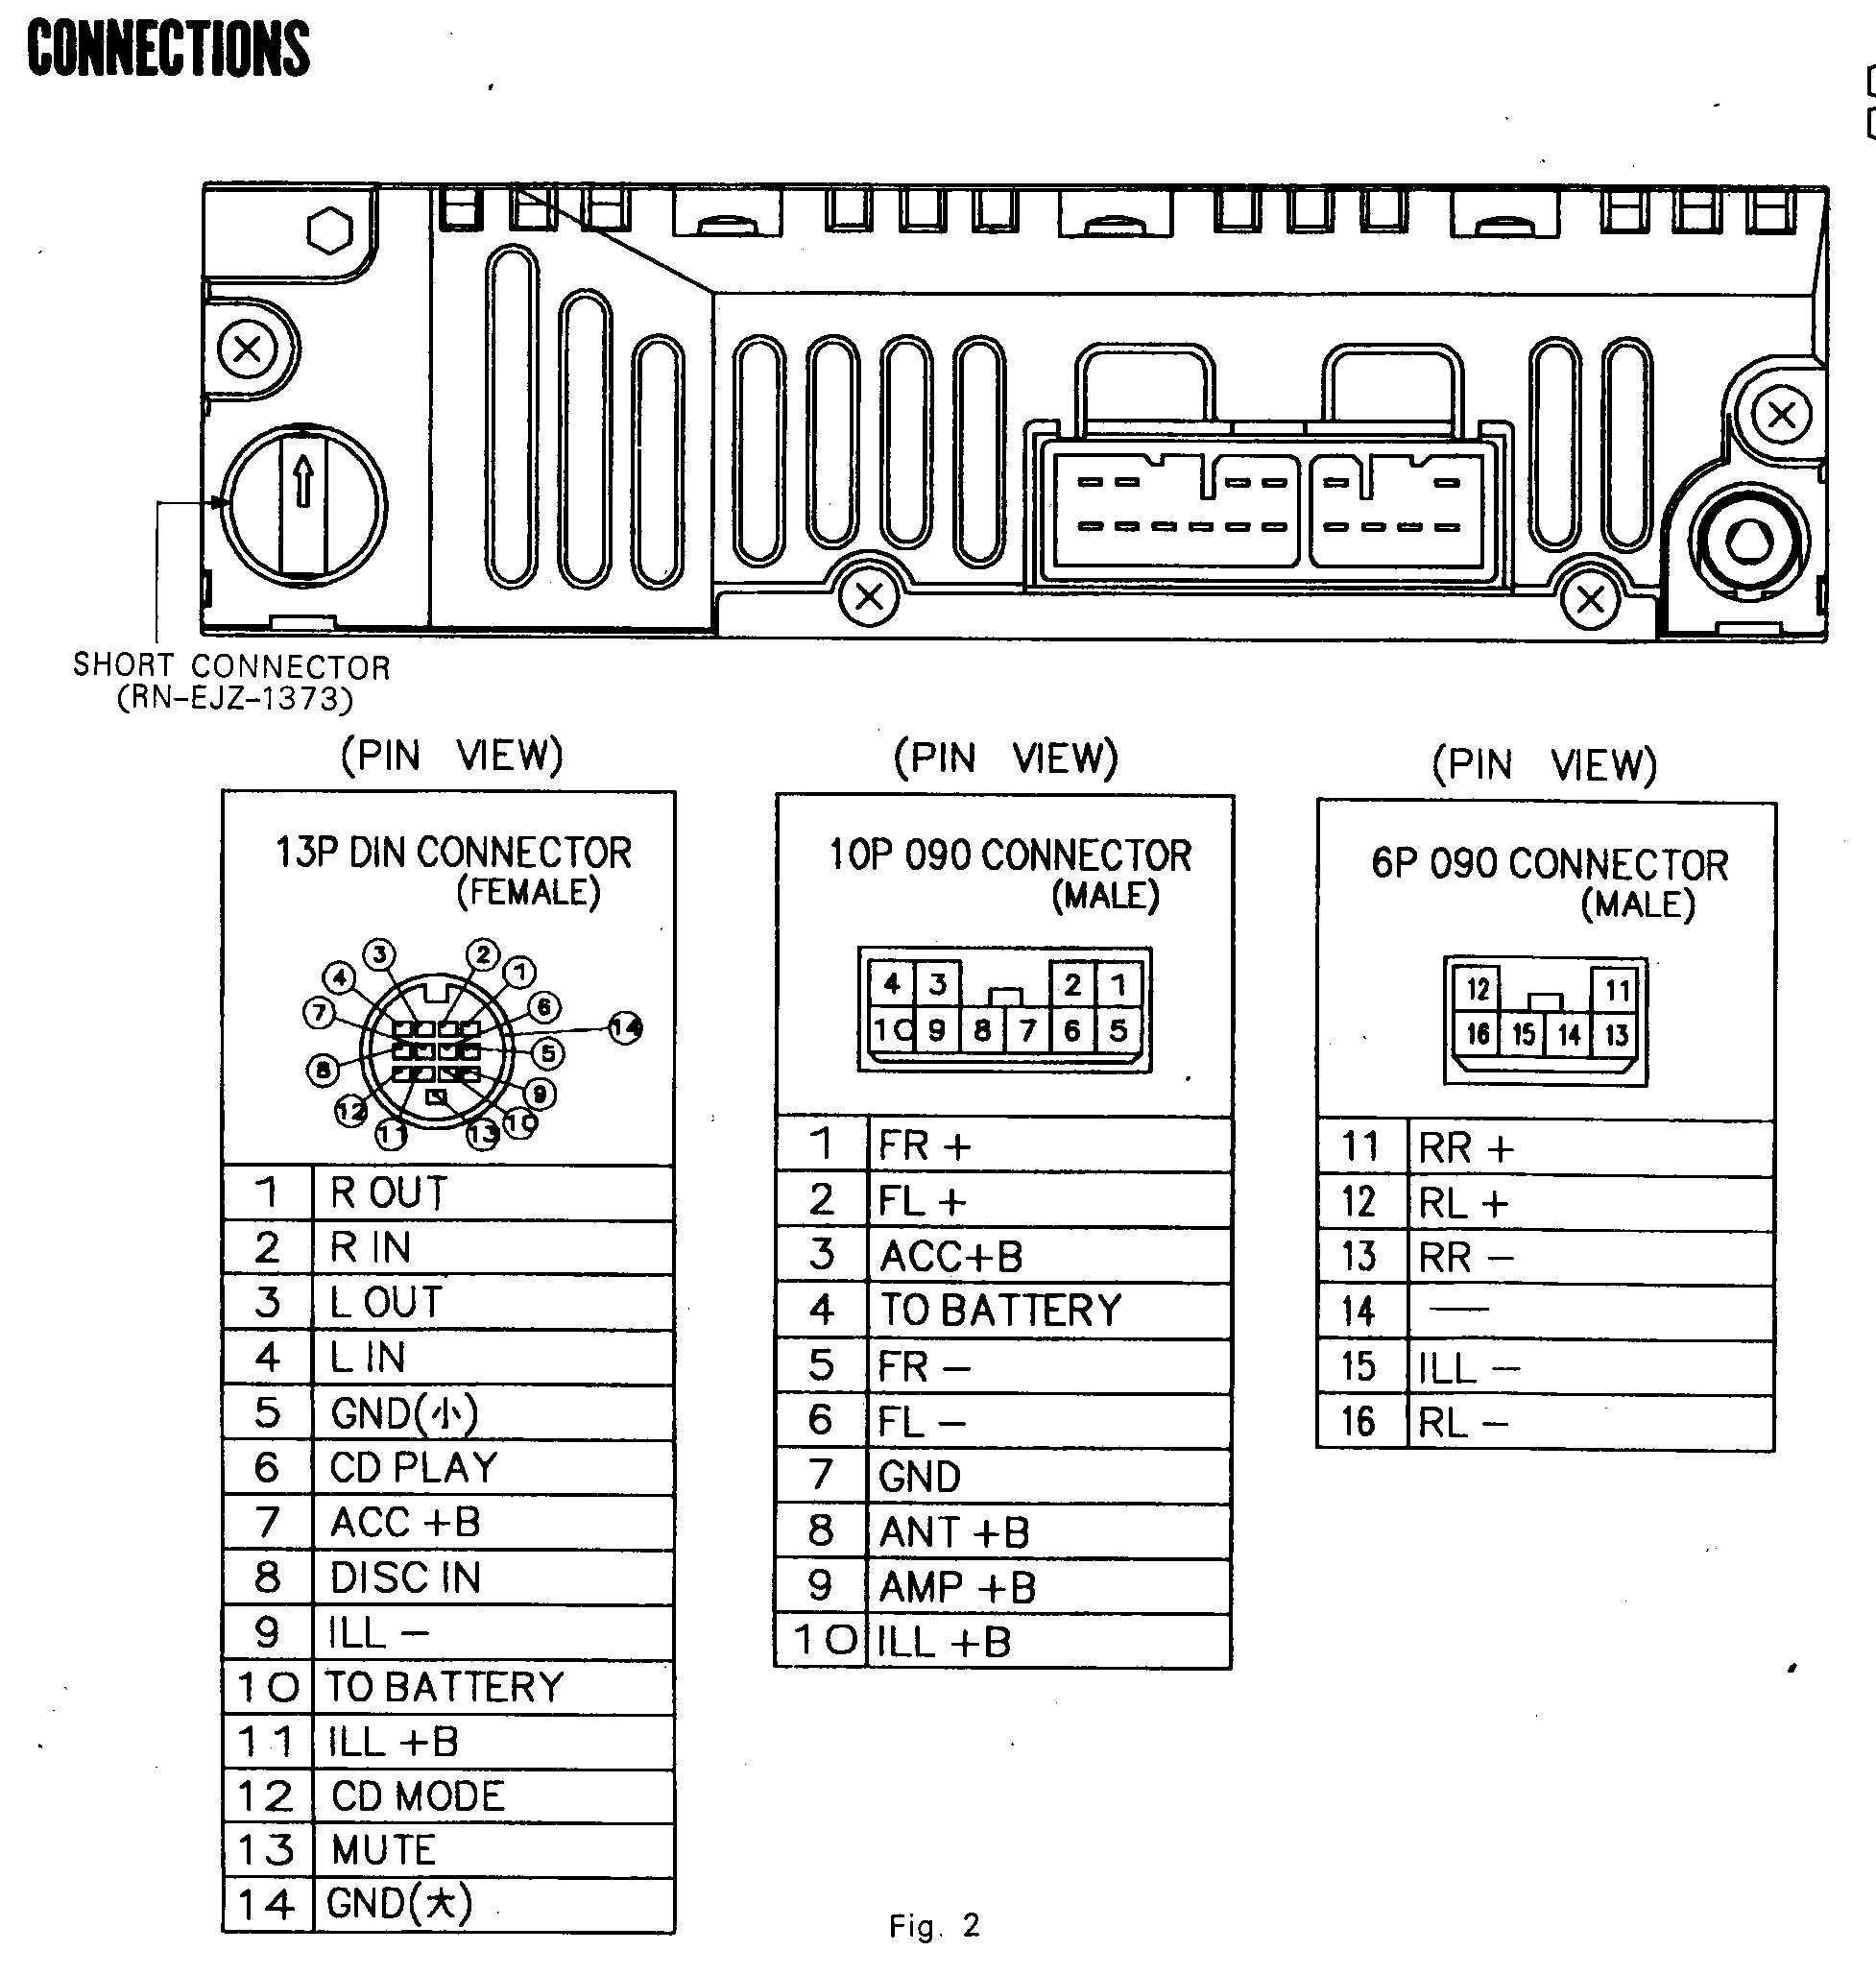 medium resolution of wiring 86120 toyota diagram tundra 0c130 schematic diagram database toyota 86120 0c130 wiring diagram wiring diagram